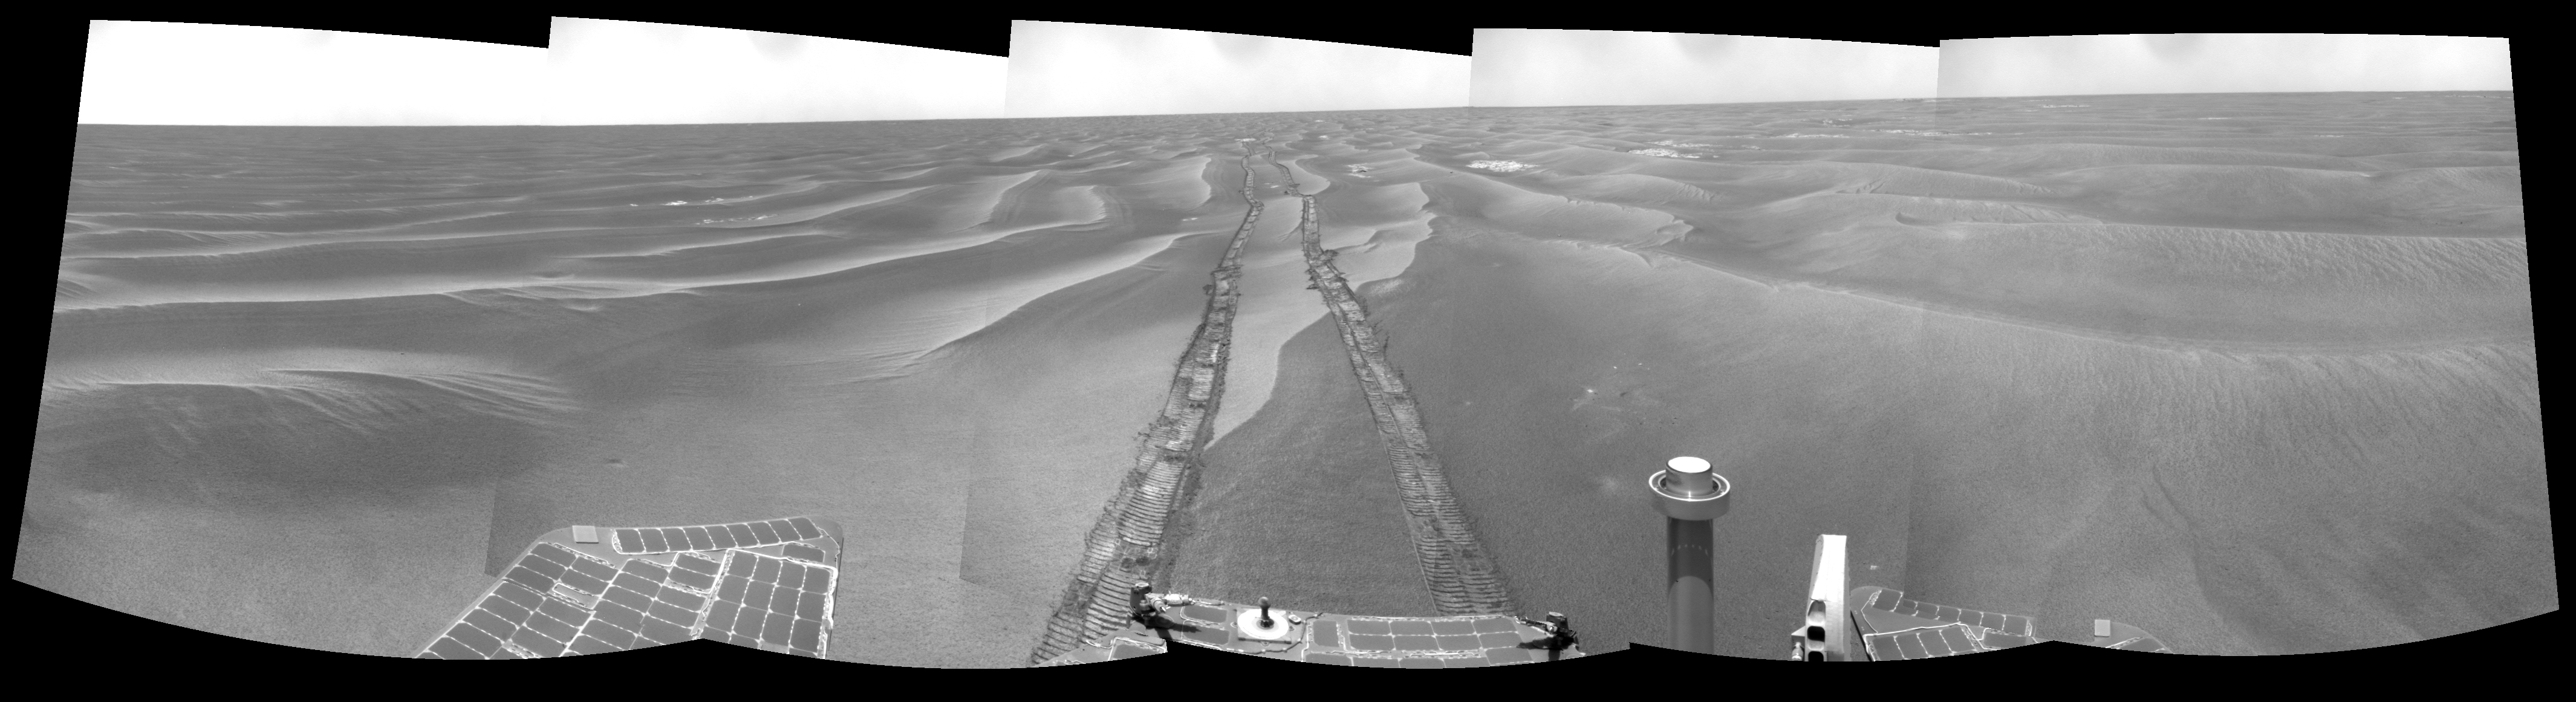 180-degree view of the Mars rover Opportunity's surroundings on Mars in February 2009